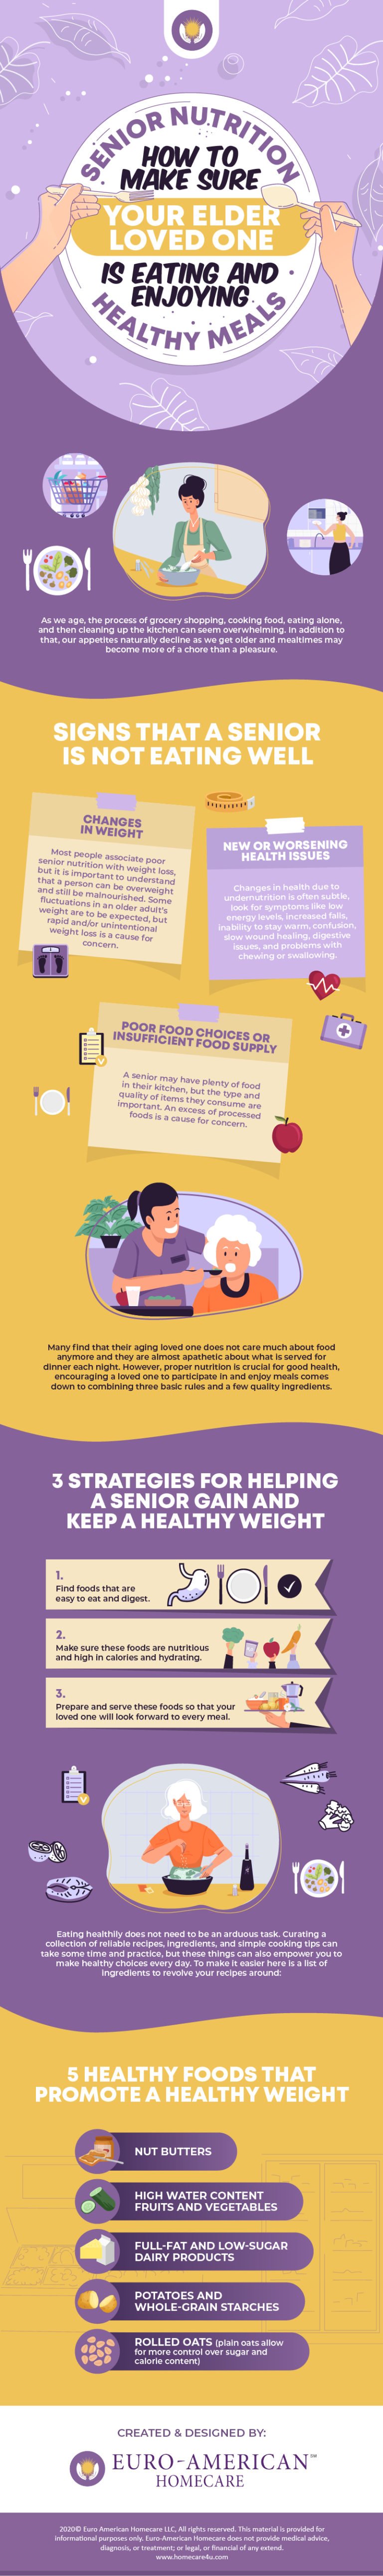 Senior-Nutrition-How-to-Make-Sure-Your-Elder-Loved-One-Is-Eating-and-Enjoying-Healthy-Meals infographic